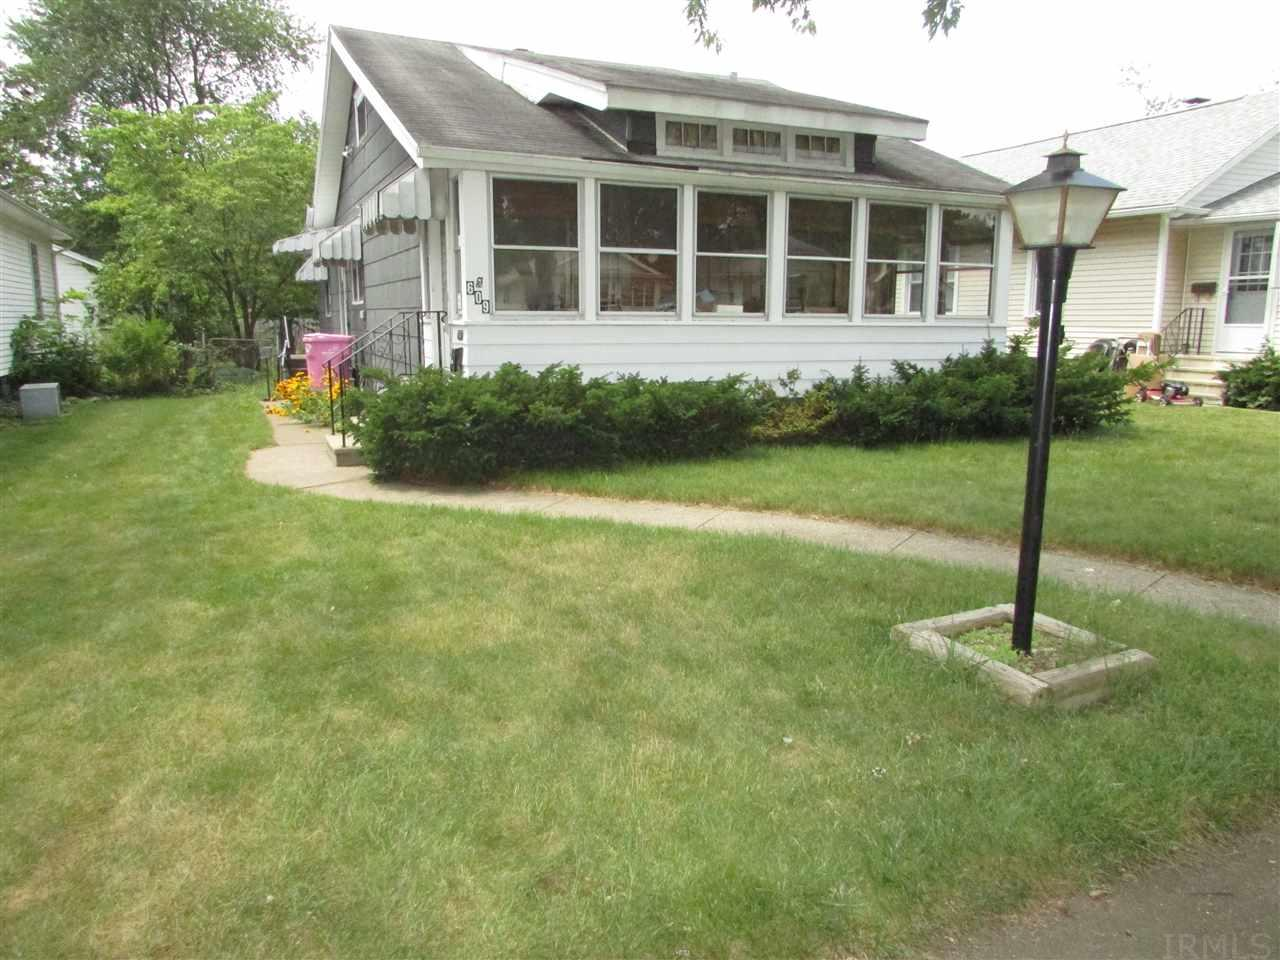 609 S 33rd street, South Bend, IN 46615